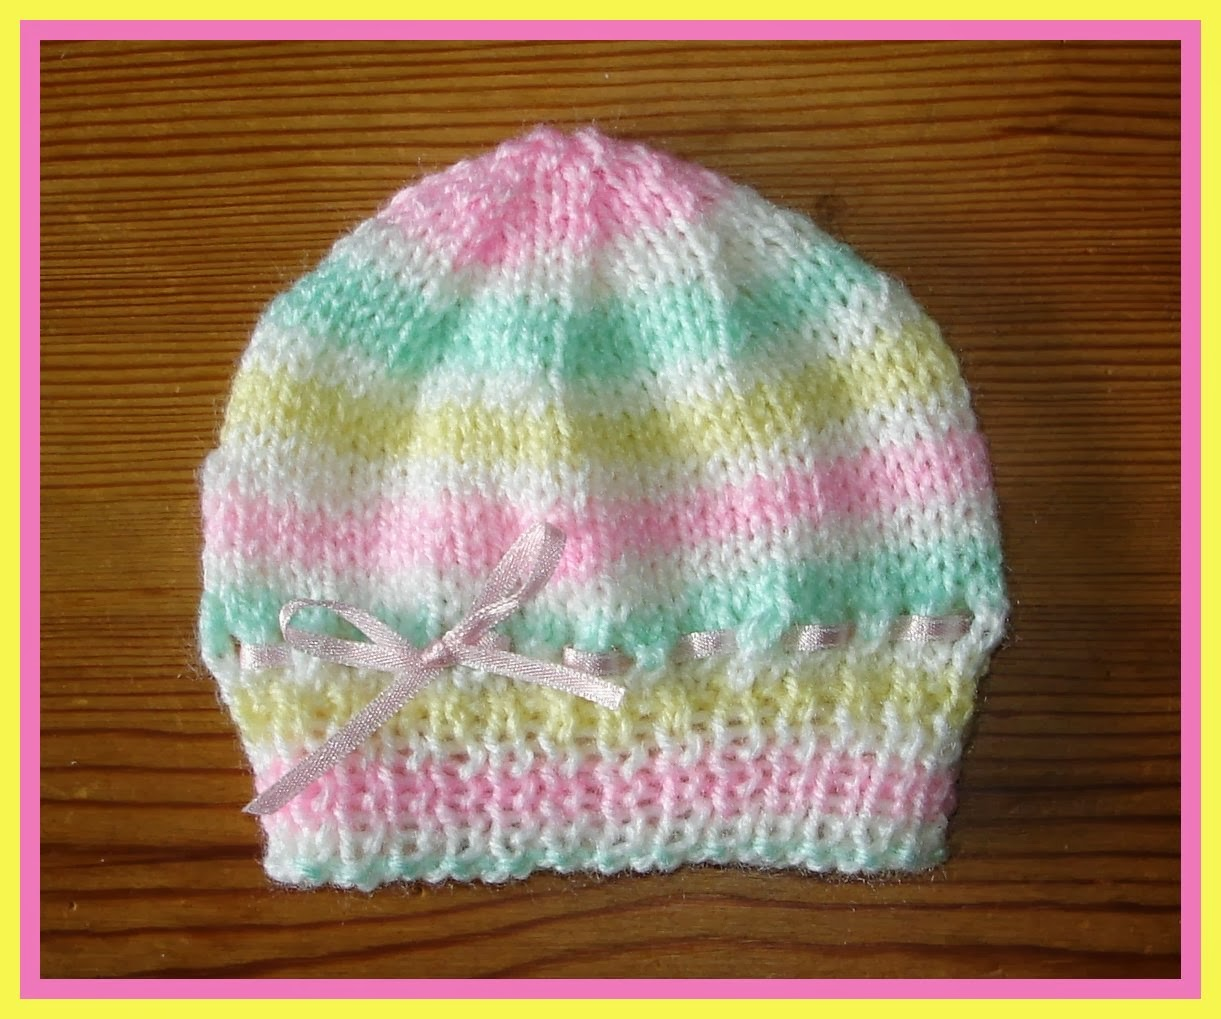 Knitted Infant Hat Patterns : mariannas lazy daisy days: Candystripe Knitted Baby Hats